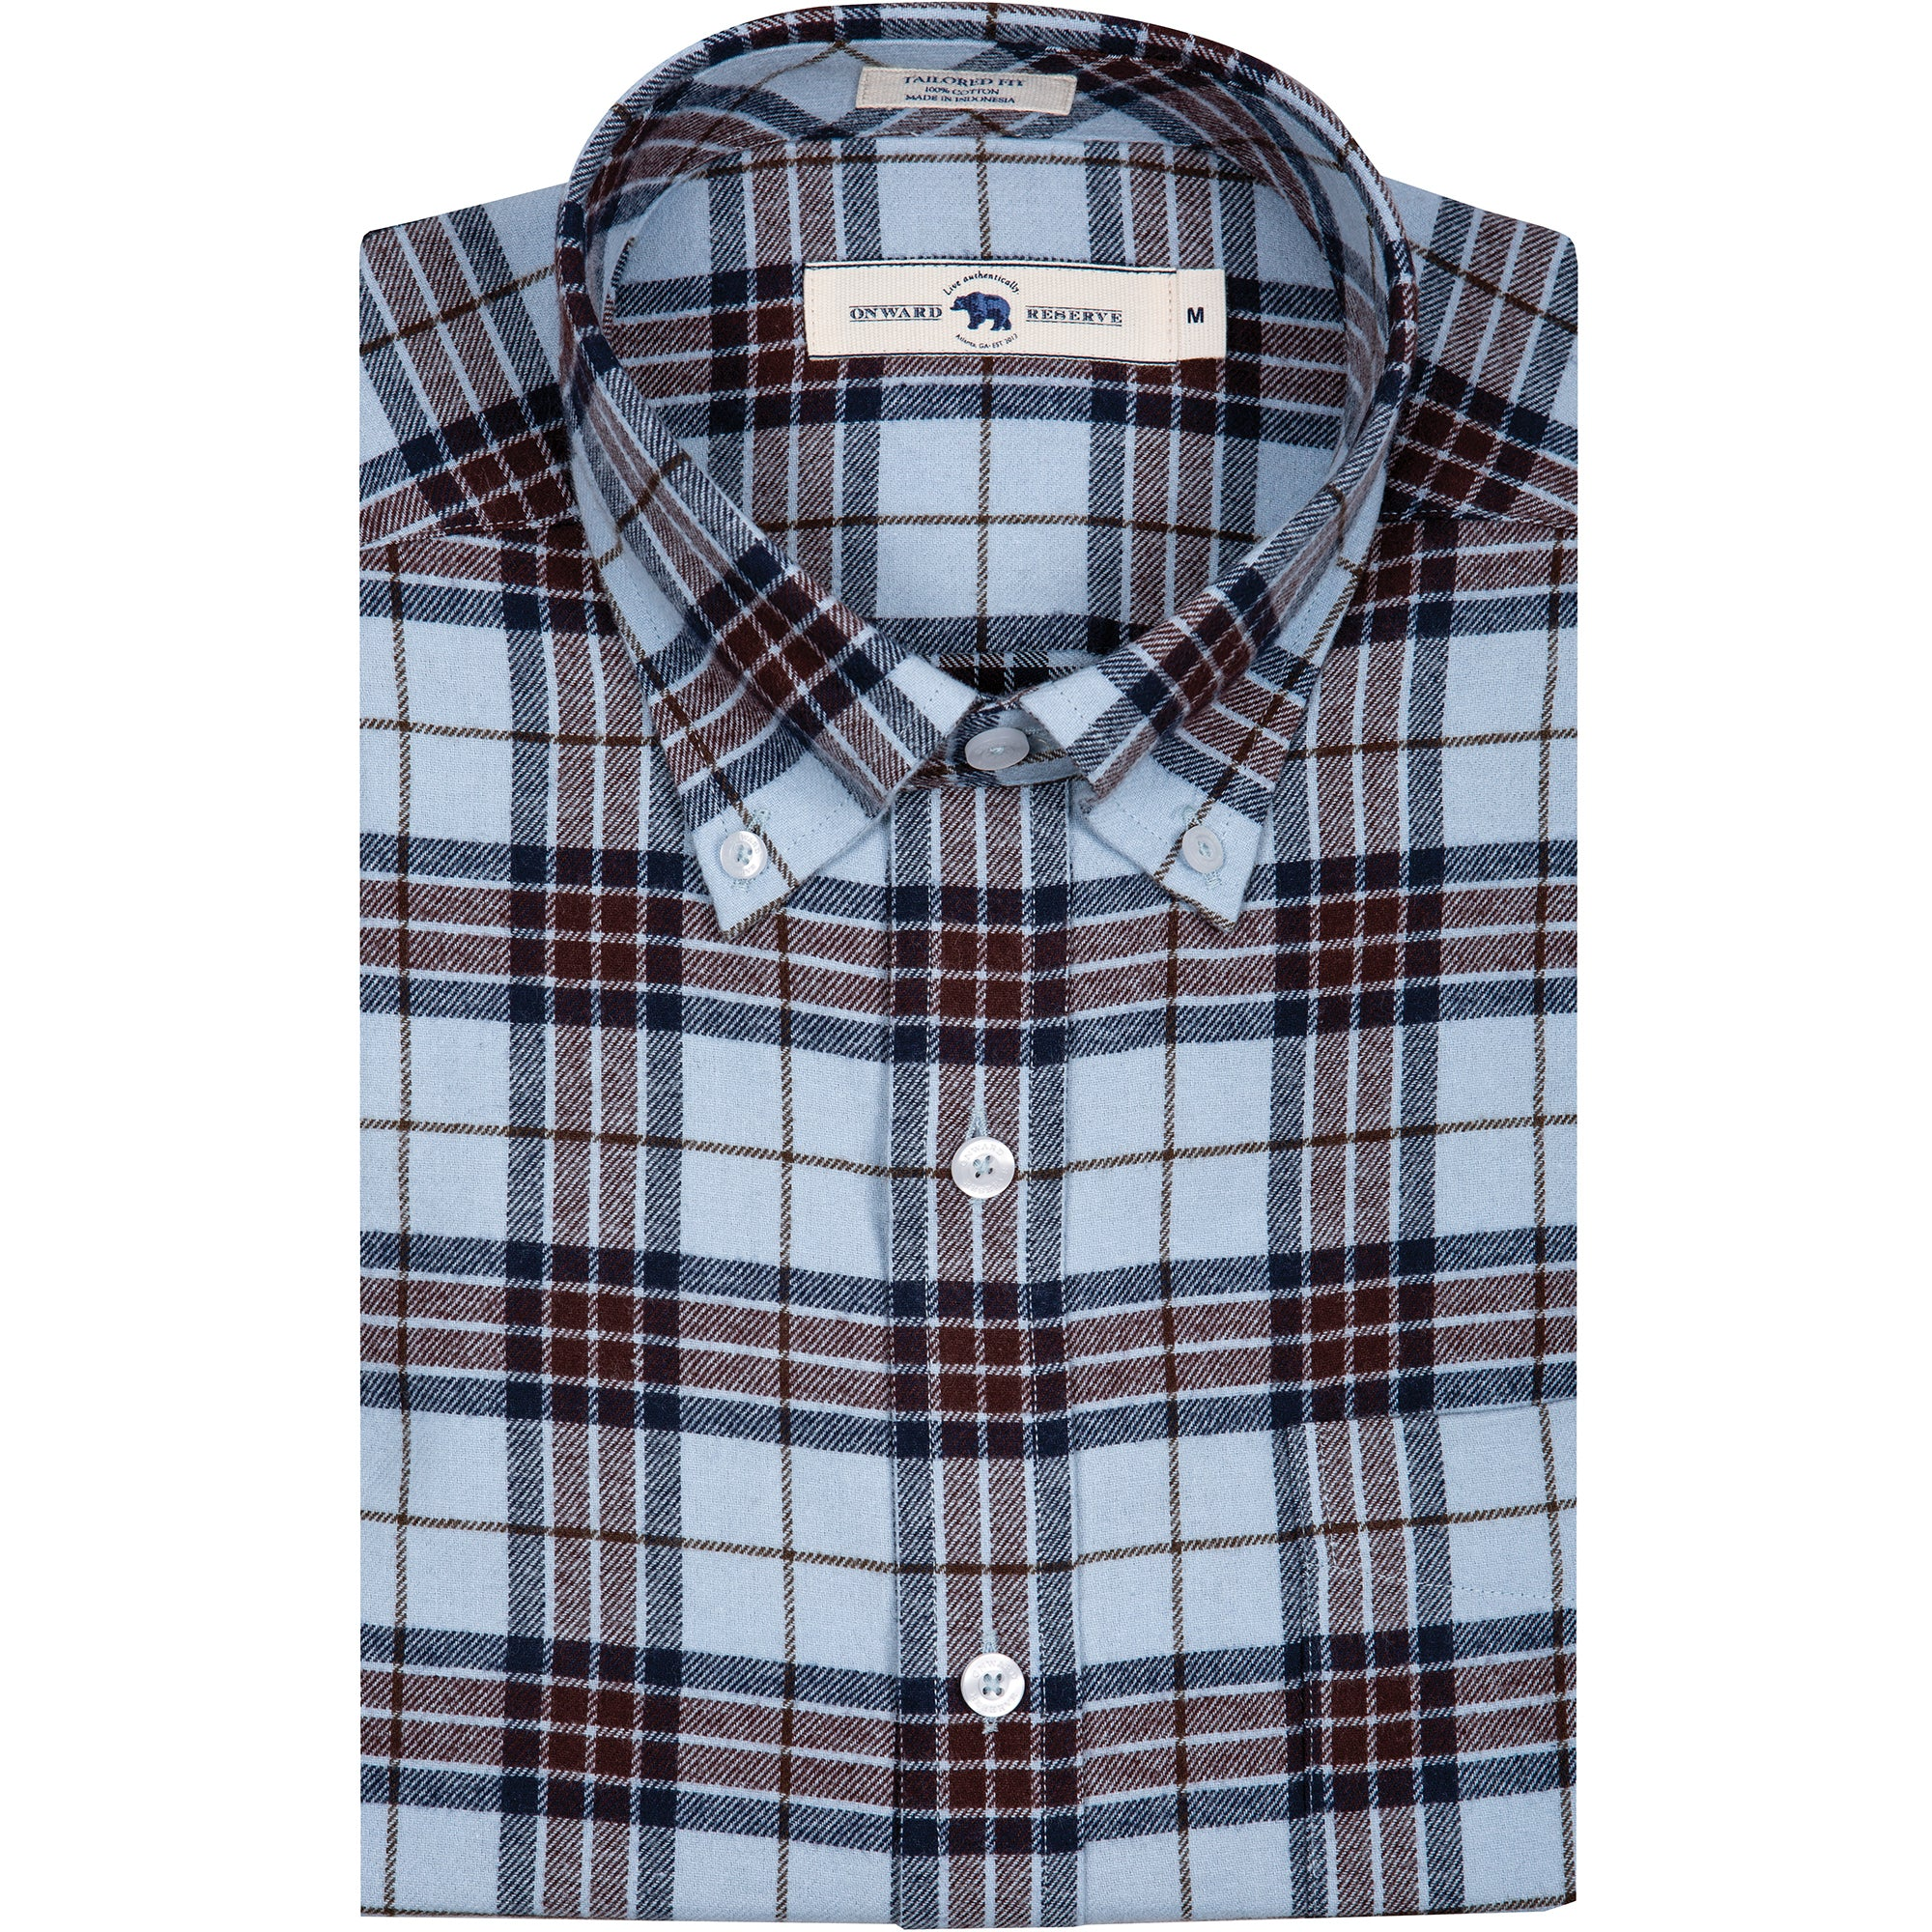 Patton Tailored Fit Flannel